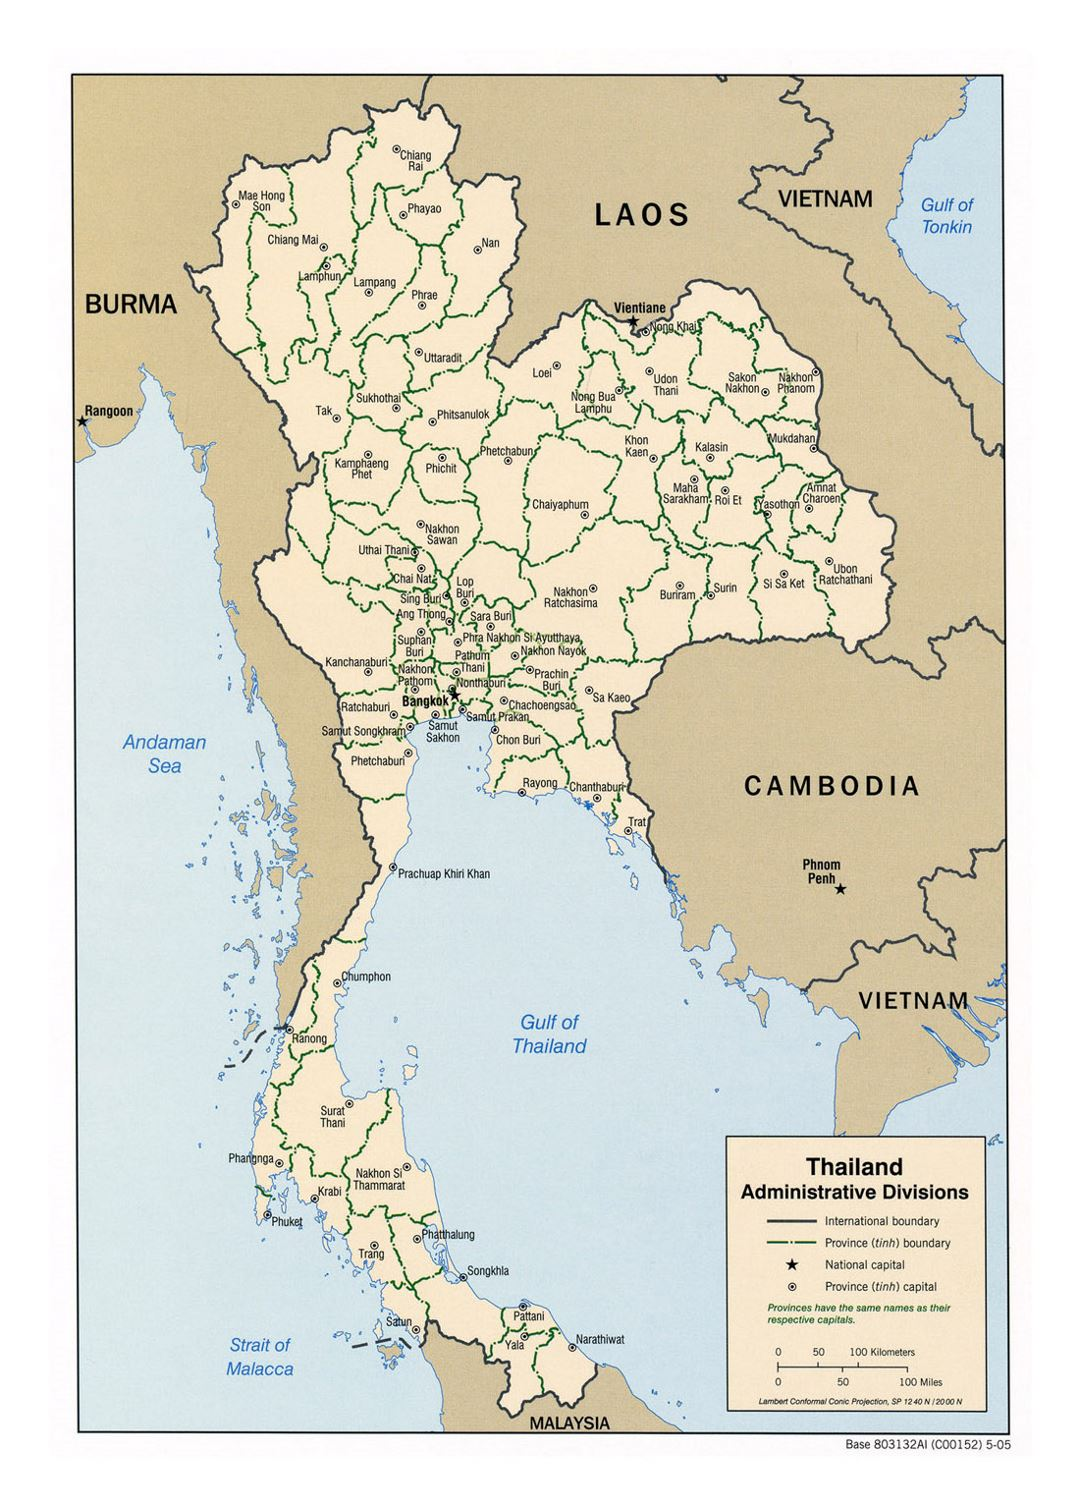 Detailed administrative divisions map of Thailand - 2005